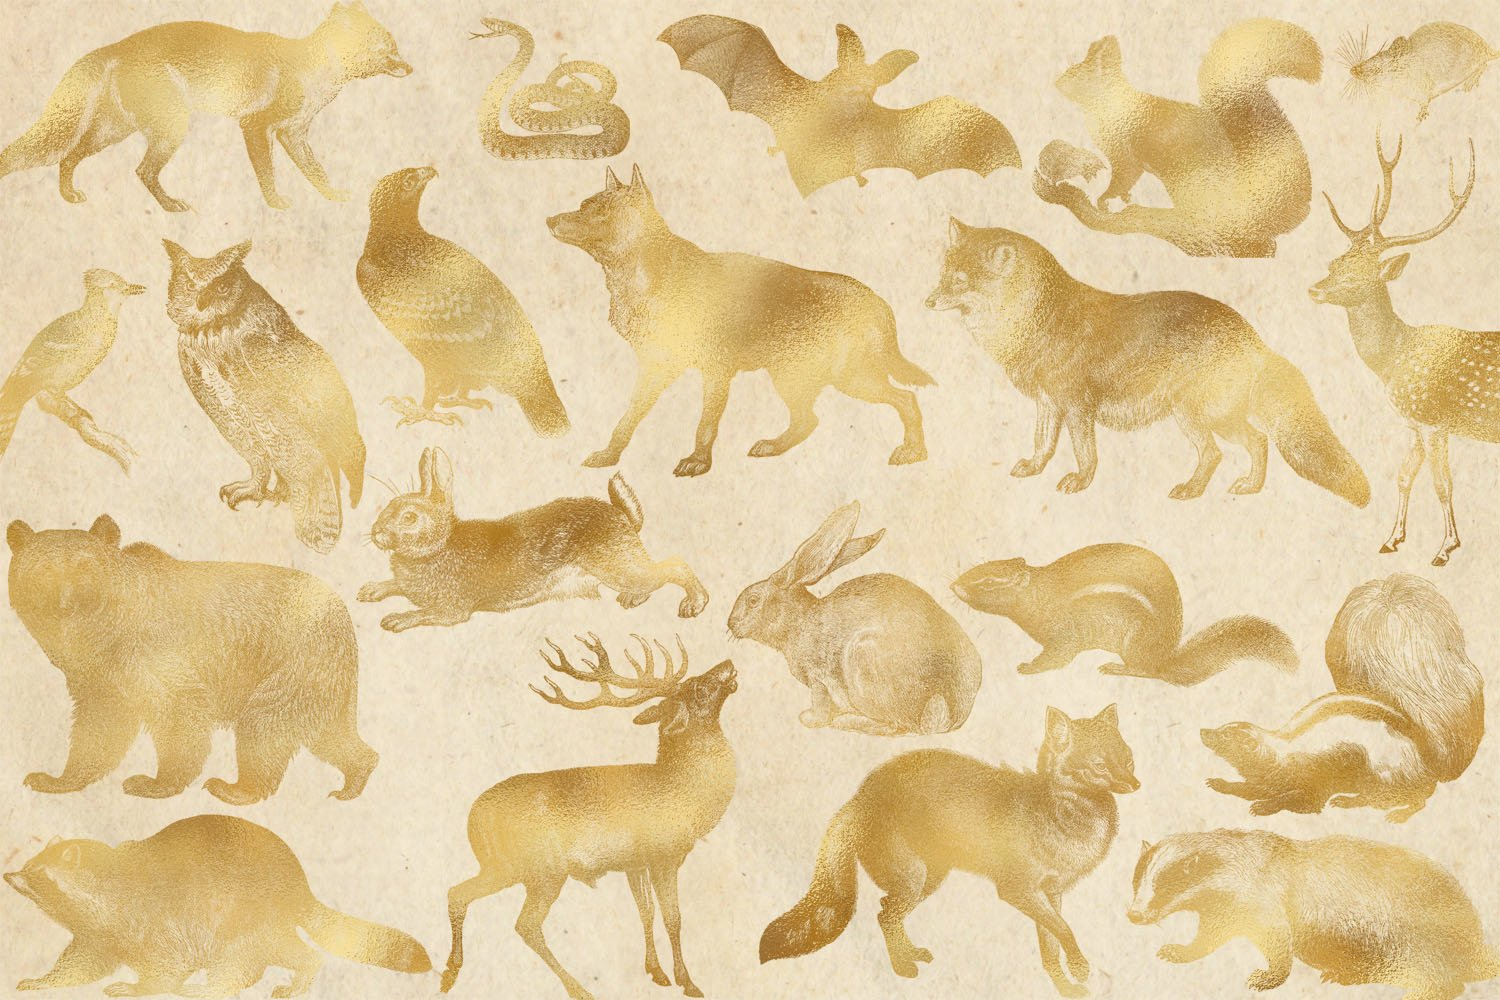 Gold Forest Animals Clip Art example image 3